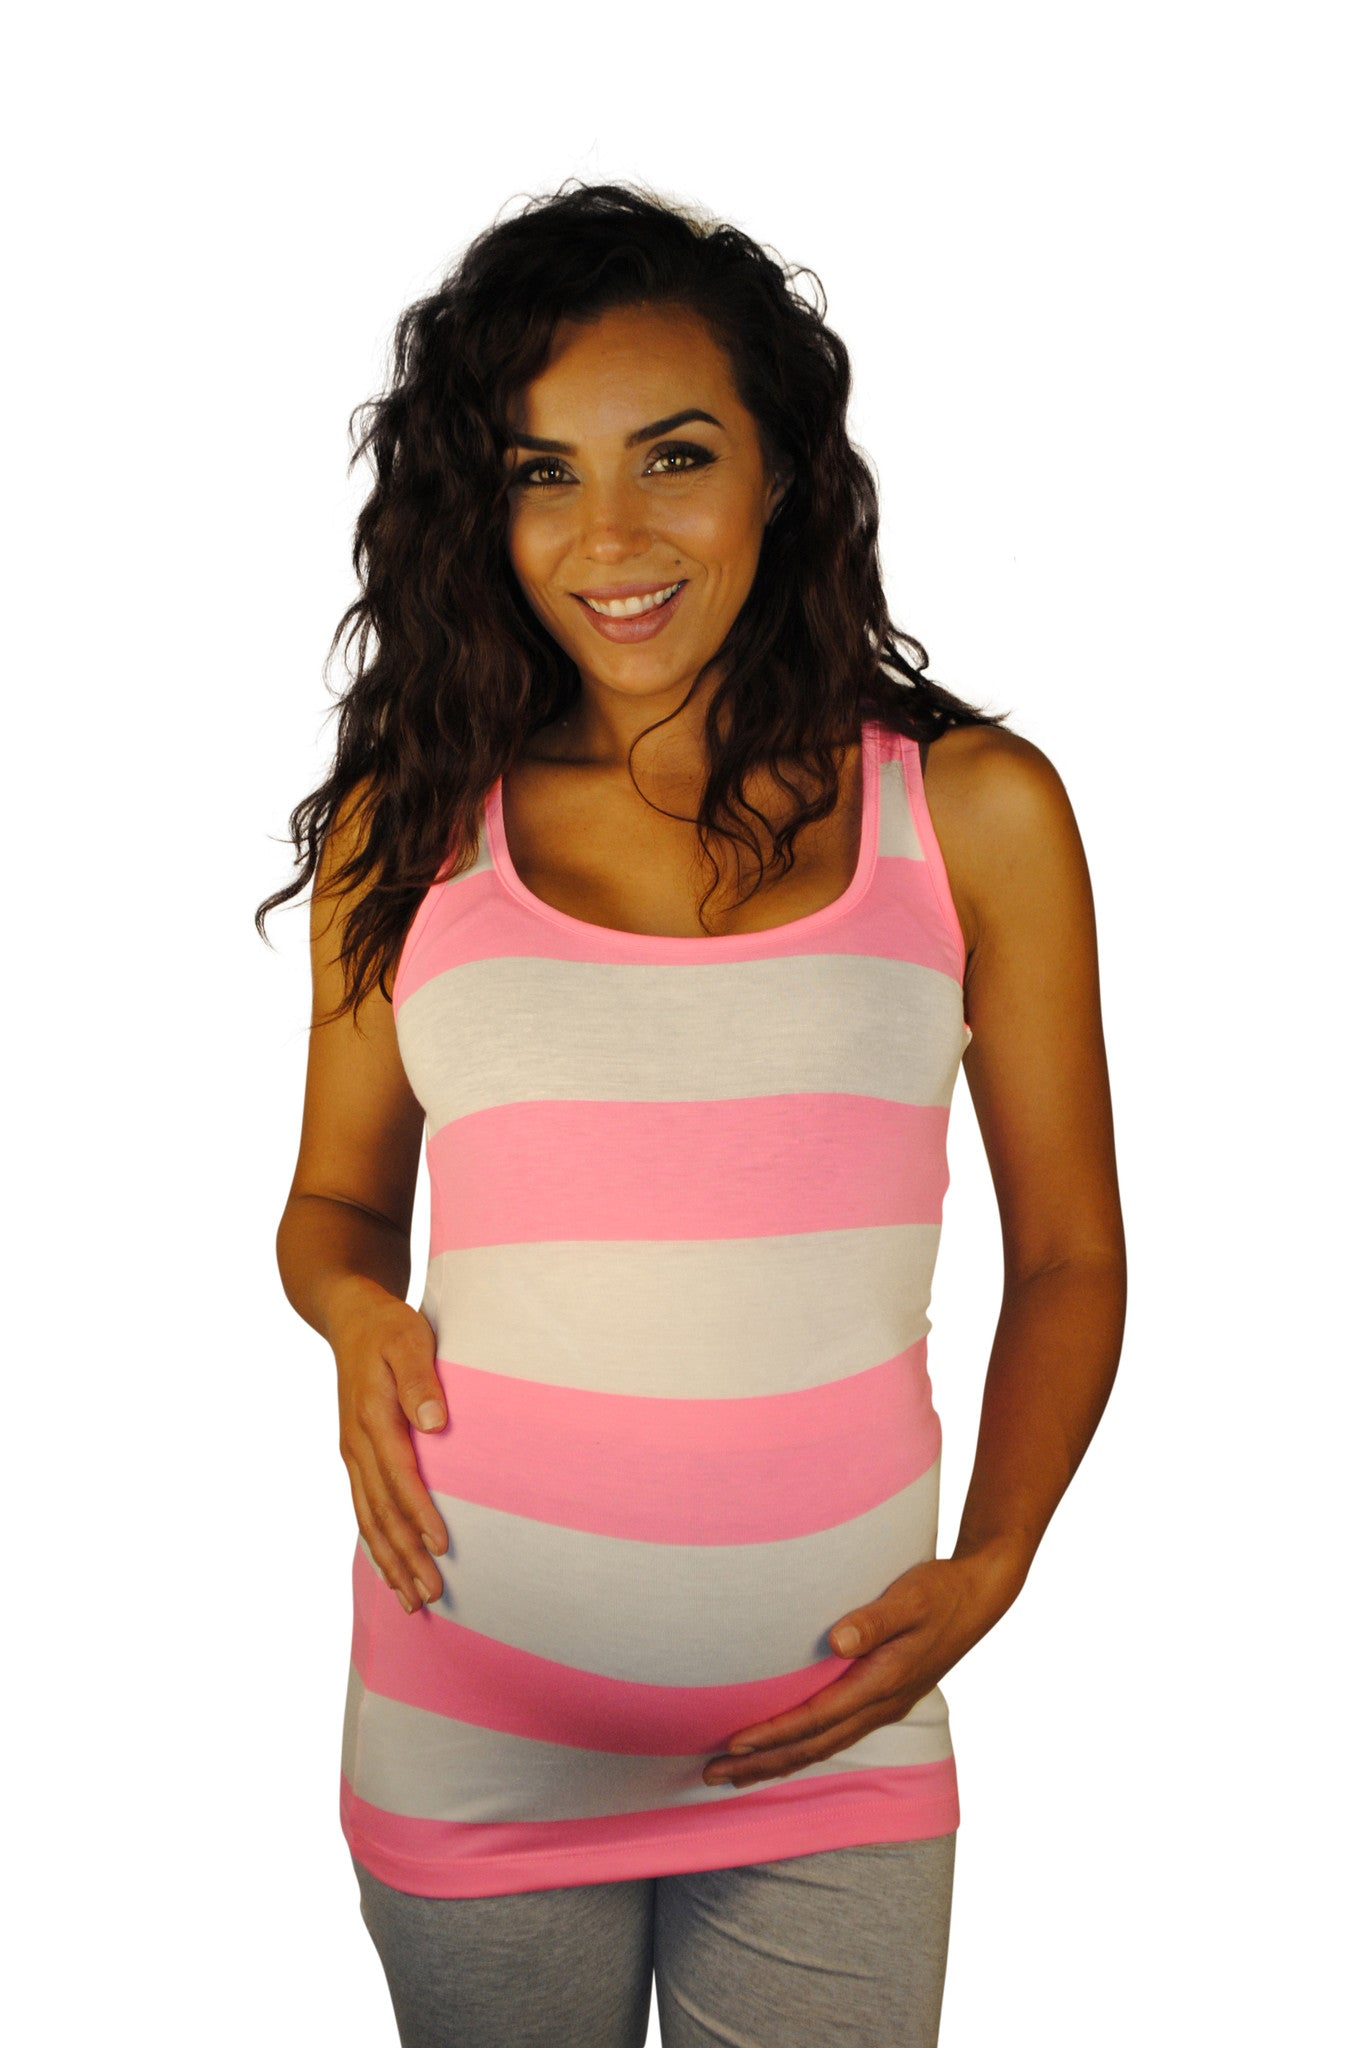 Find high quality printed Maternity Tank Tops at CafePress. Unique designs created by designers all over the world. Free Returns % Satisfaction Guarantee Fast Shipping.